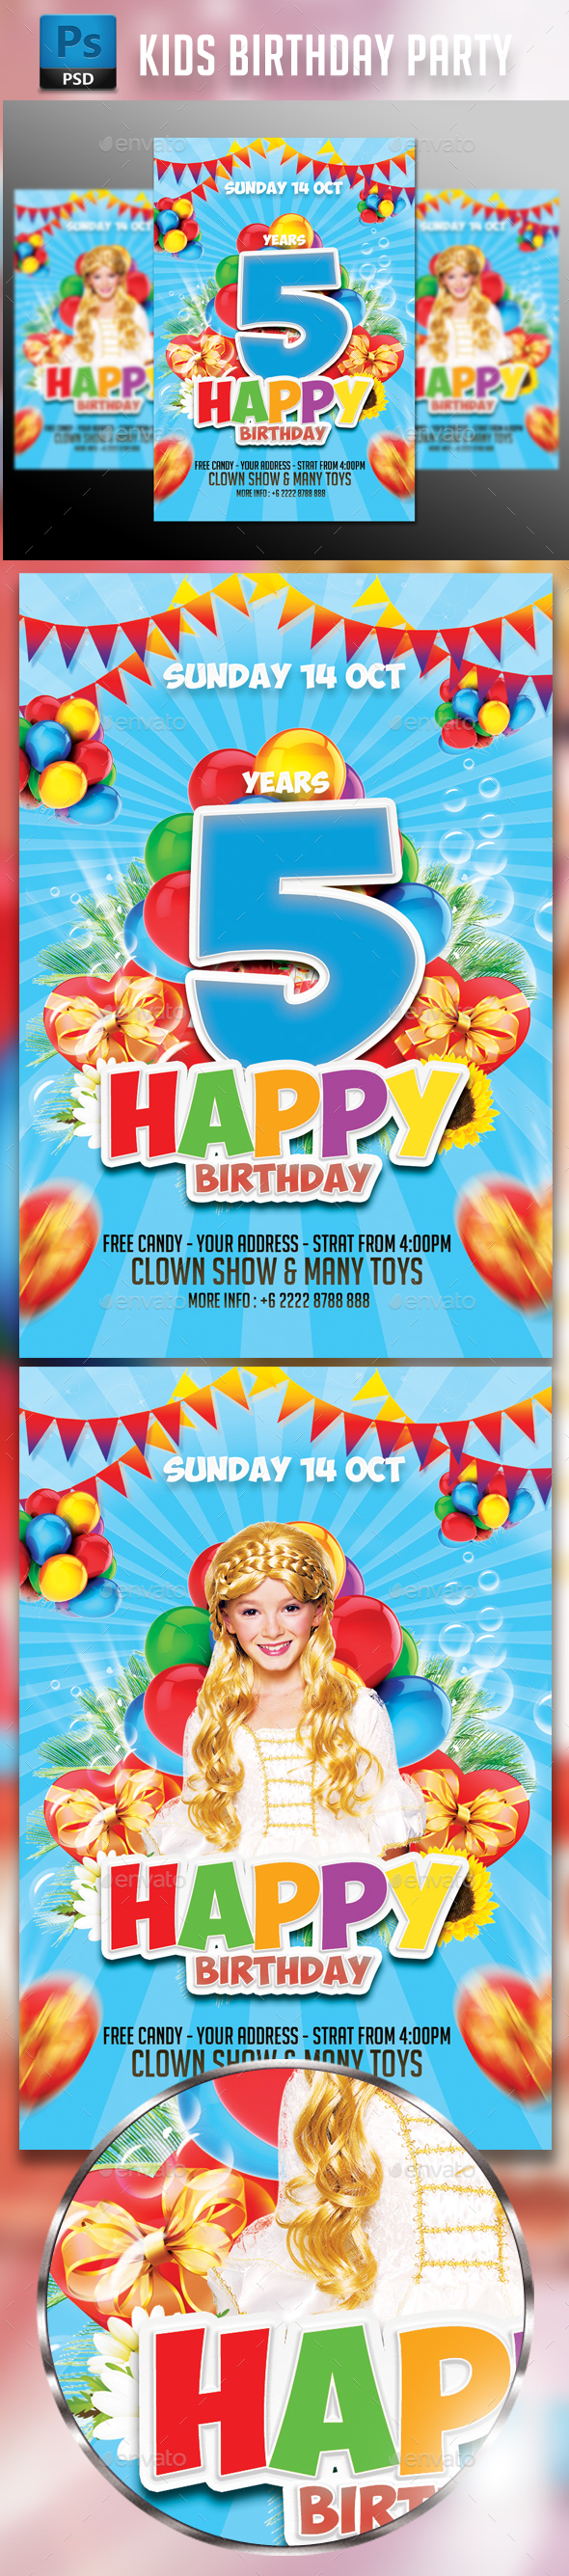 Kids Birthday Party Flyer Template - Events Flyers